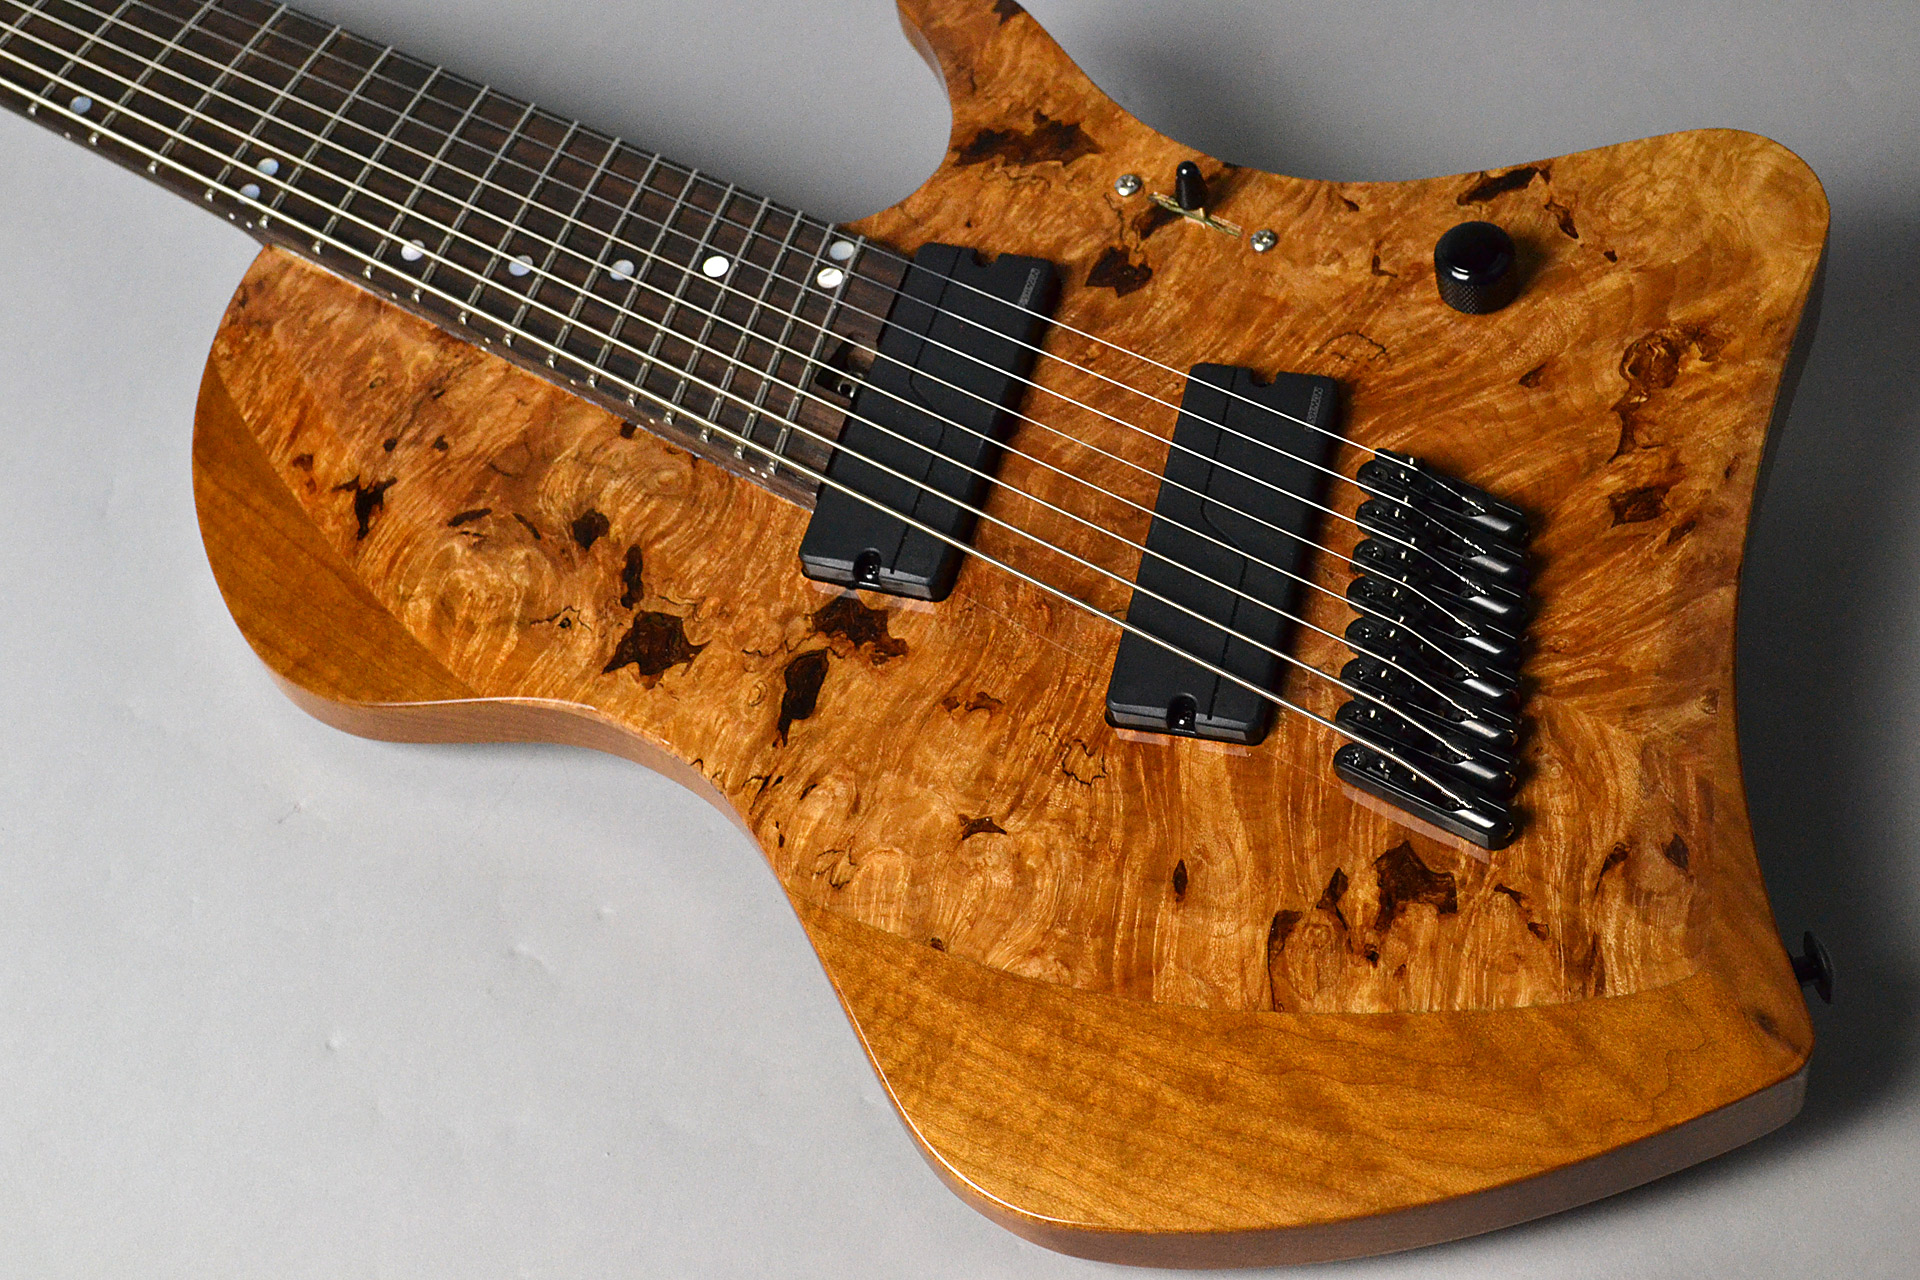 Abasi Guitars 8st Multi Scale(Fanned Fret) Burl/Ebony Natural Stainのボディトップ-アップ画像